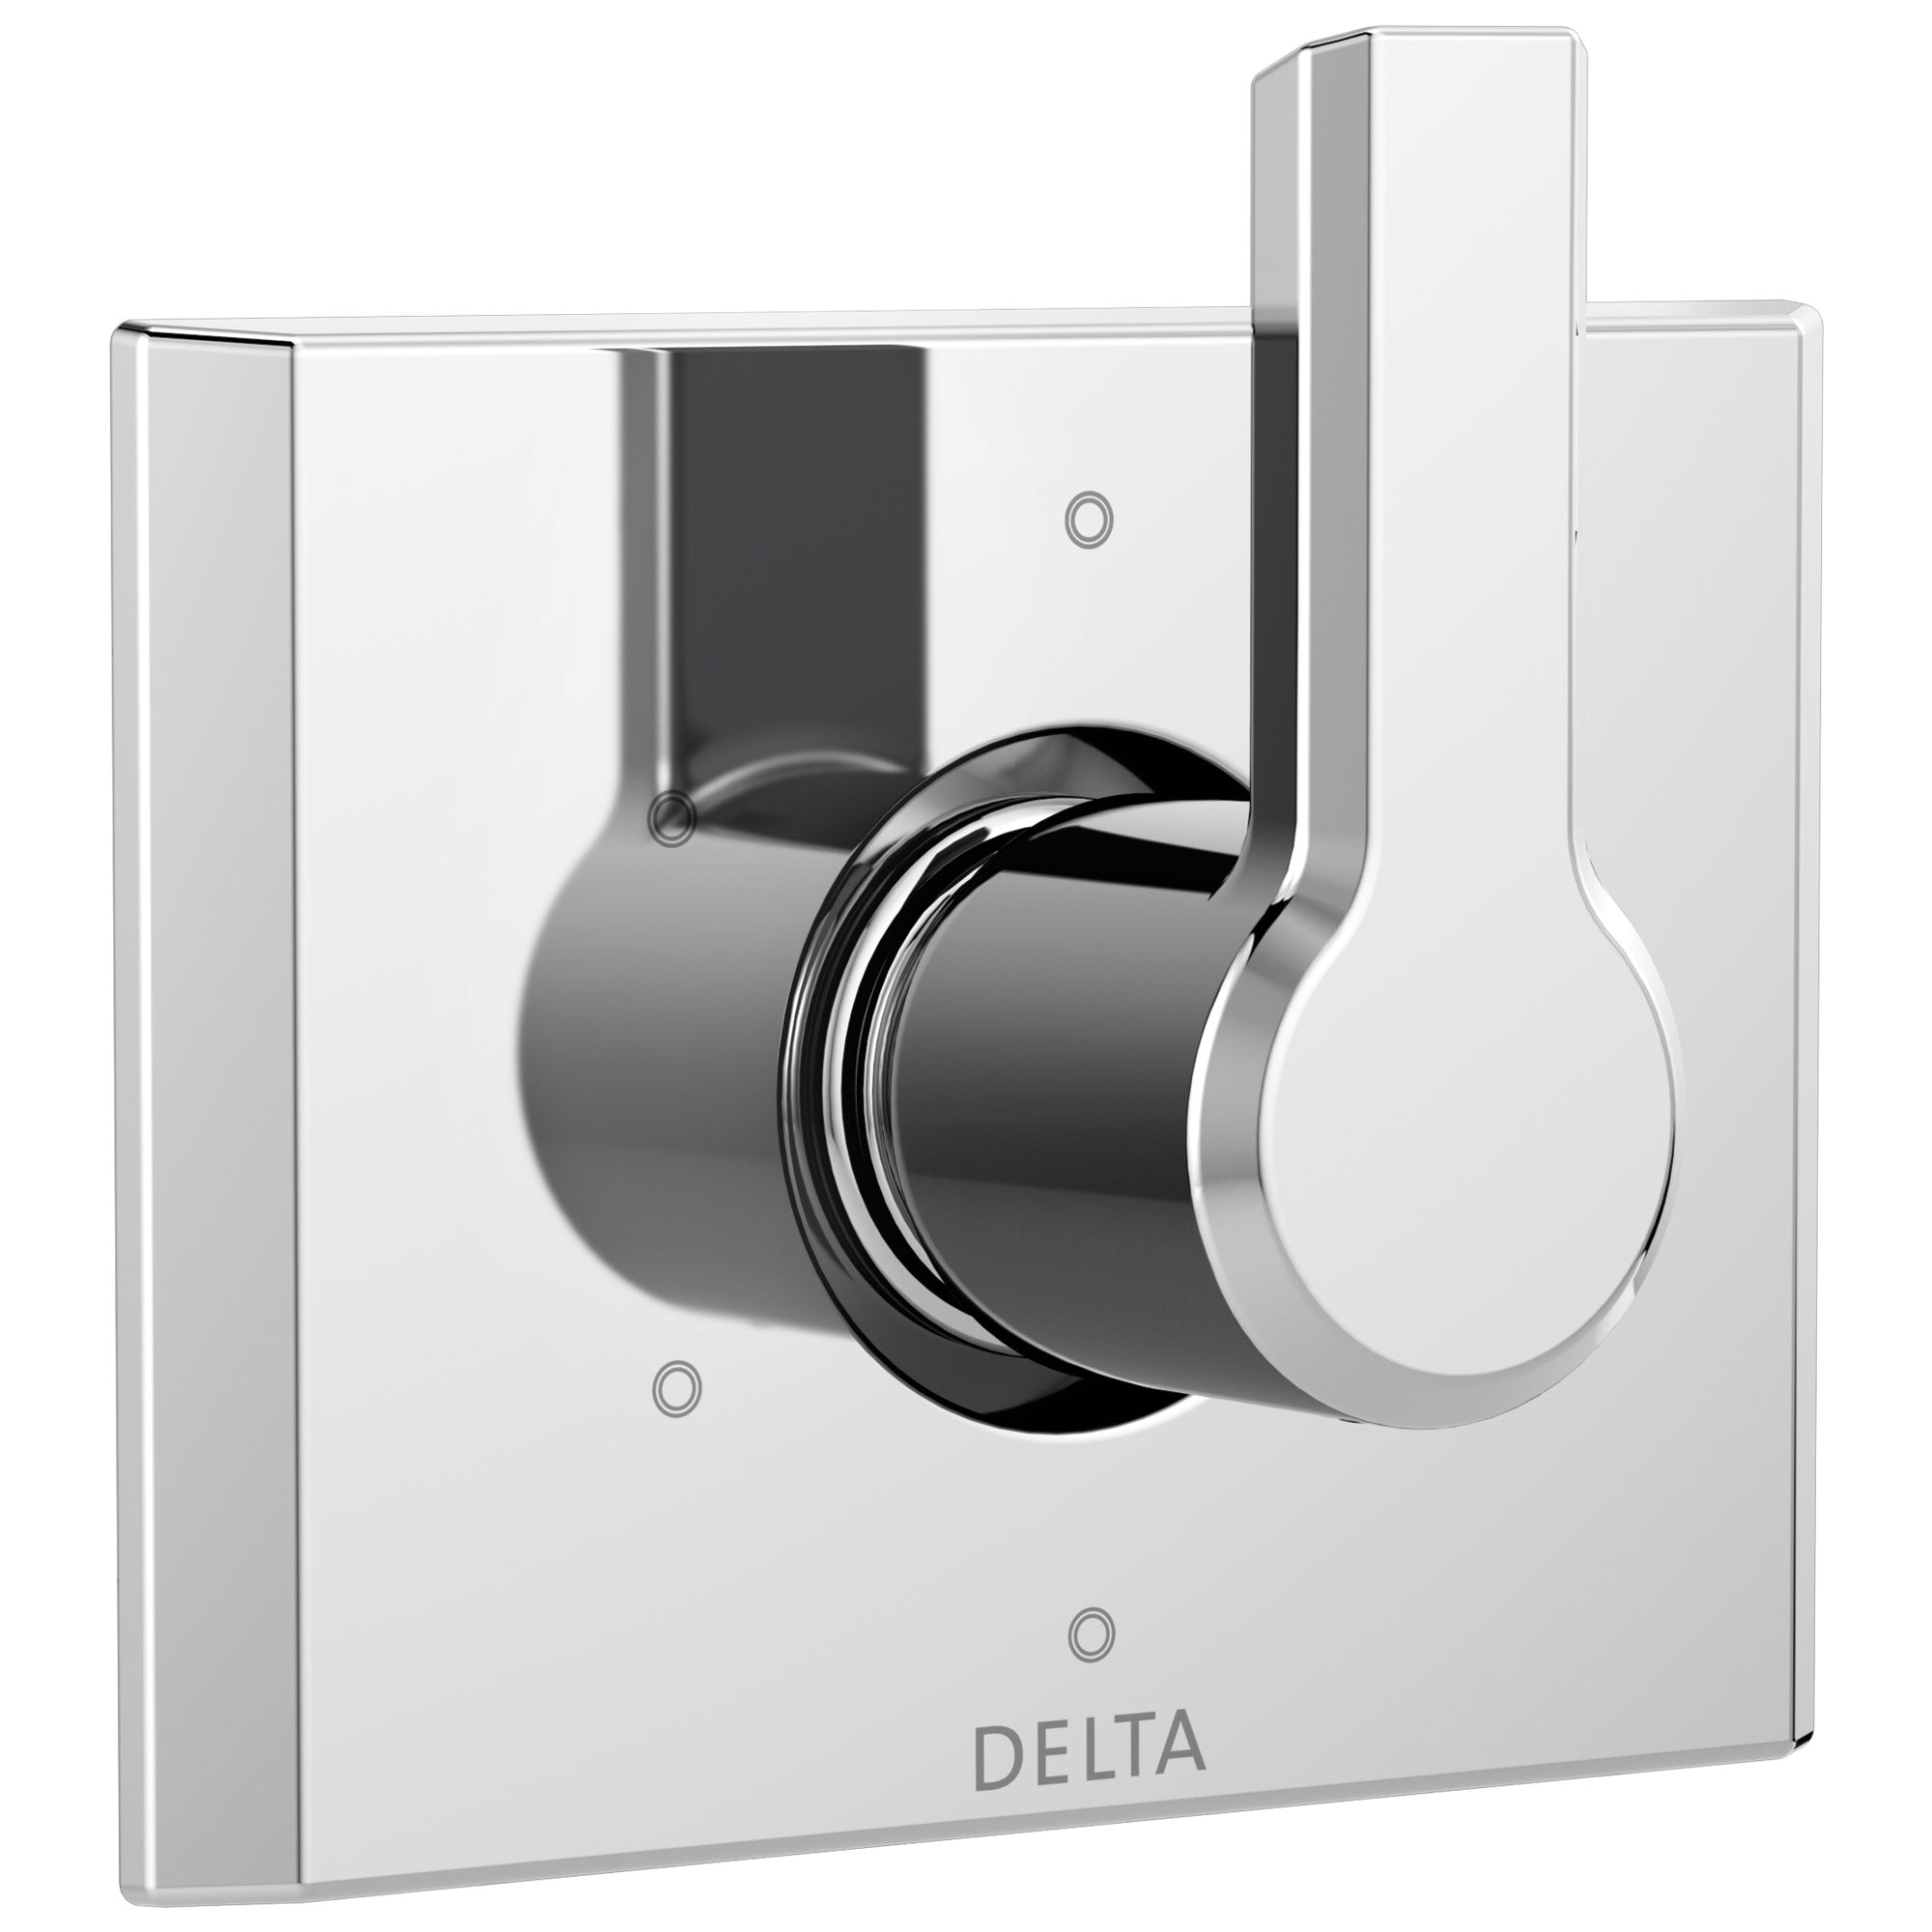 Delta Pivotal Modern Chrome Finish 6-Setting 3 Outlet Port Shower System Diverter Includes Lever Handle and Rough-in Valve D3562V